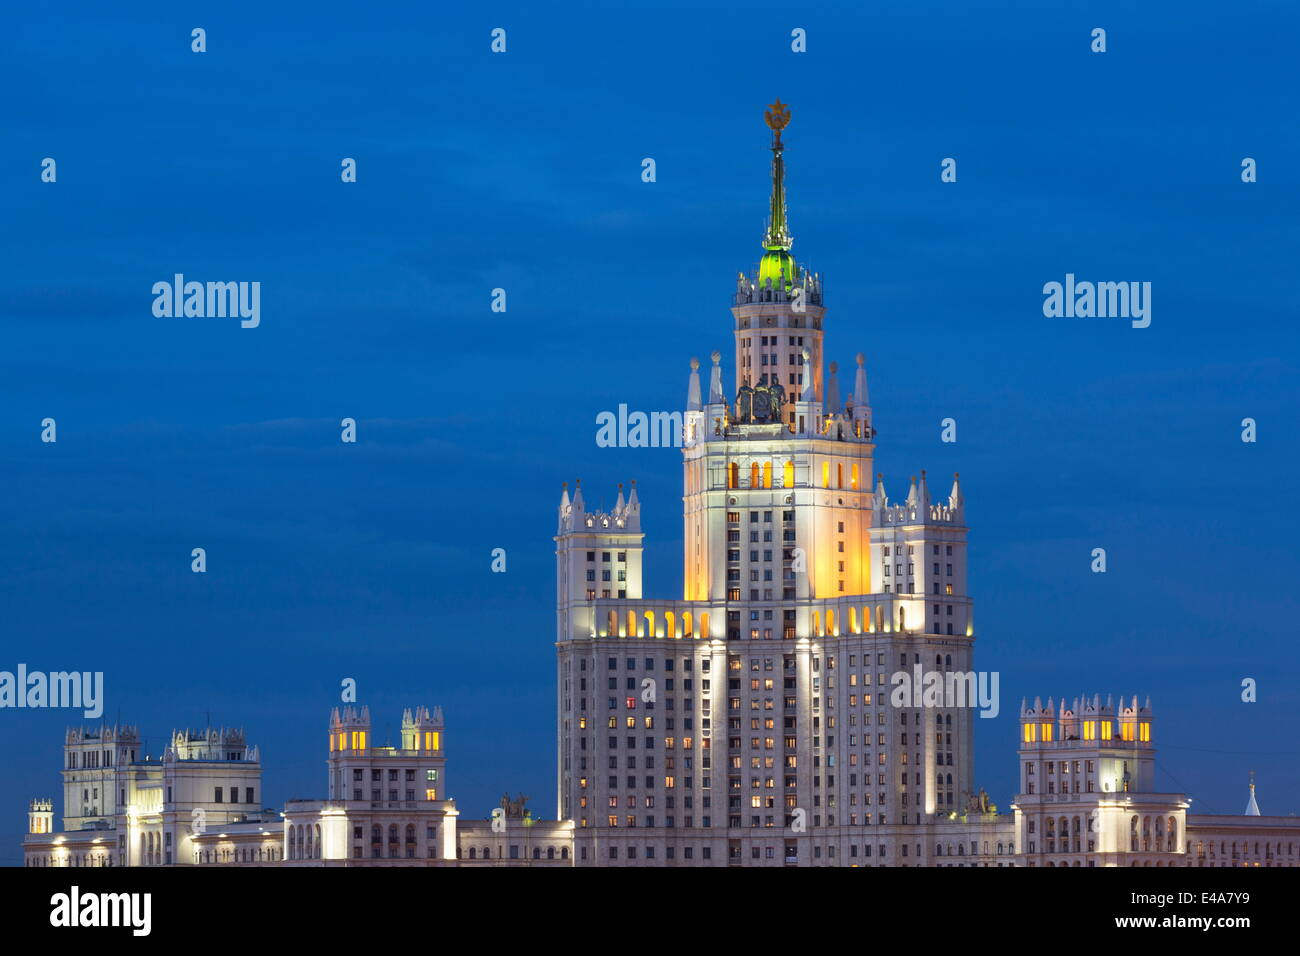 Moscow skyline at night avec Stalanist-Gothic gratte-ciel, Moscou, Russie, Europe Photo Stock